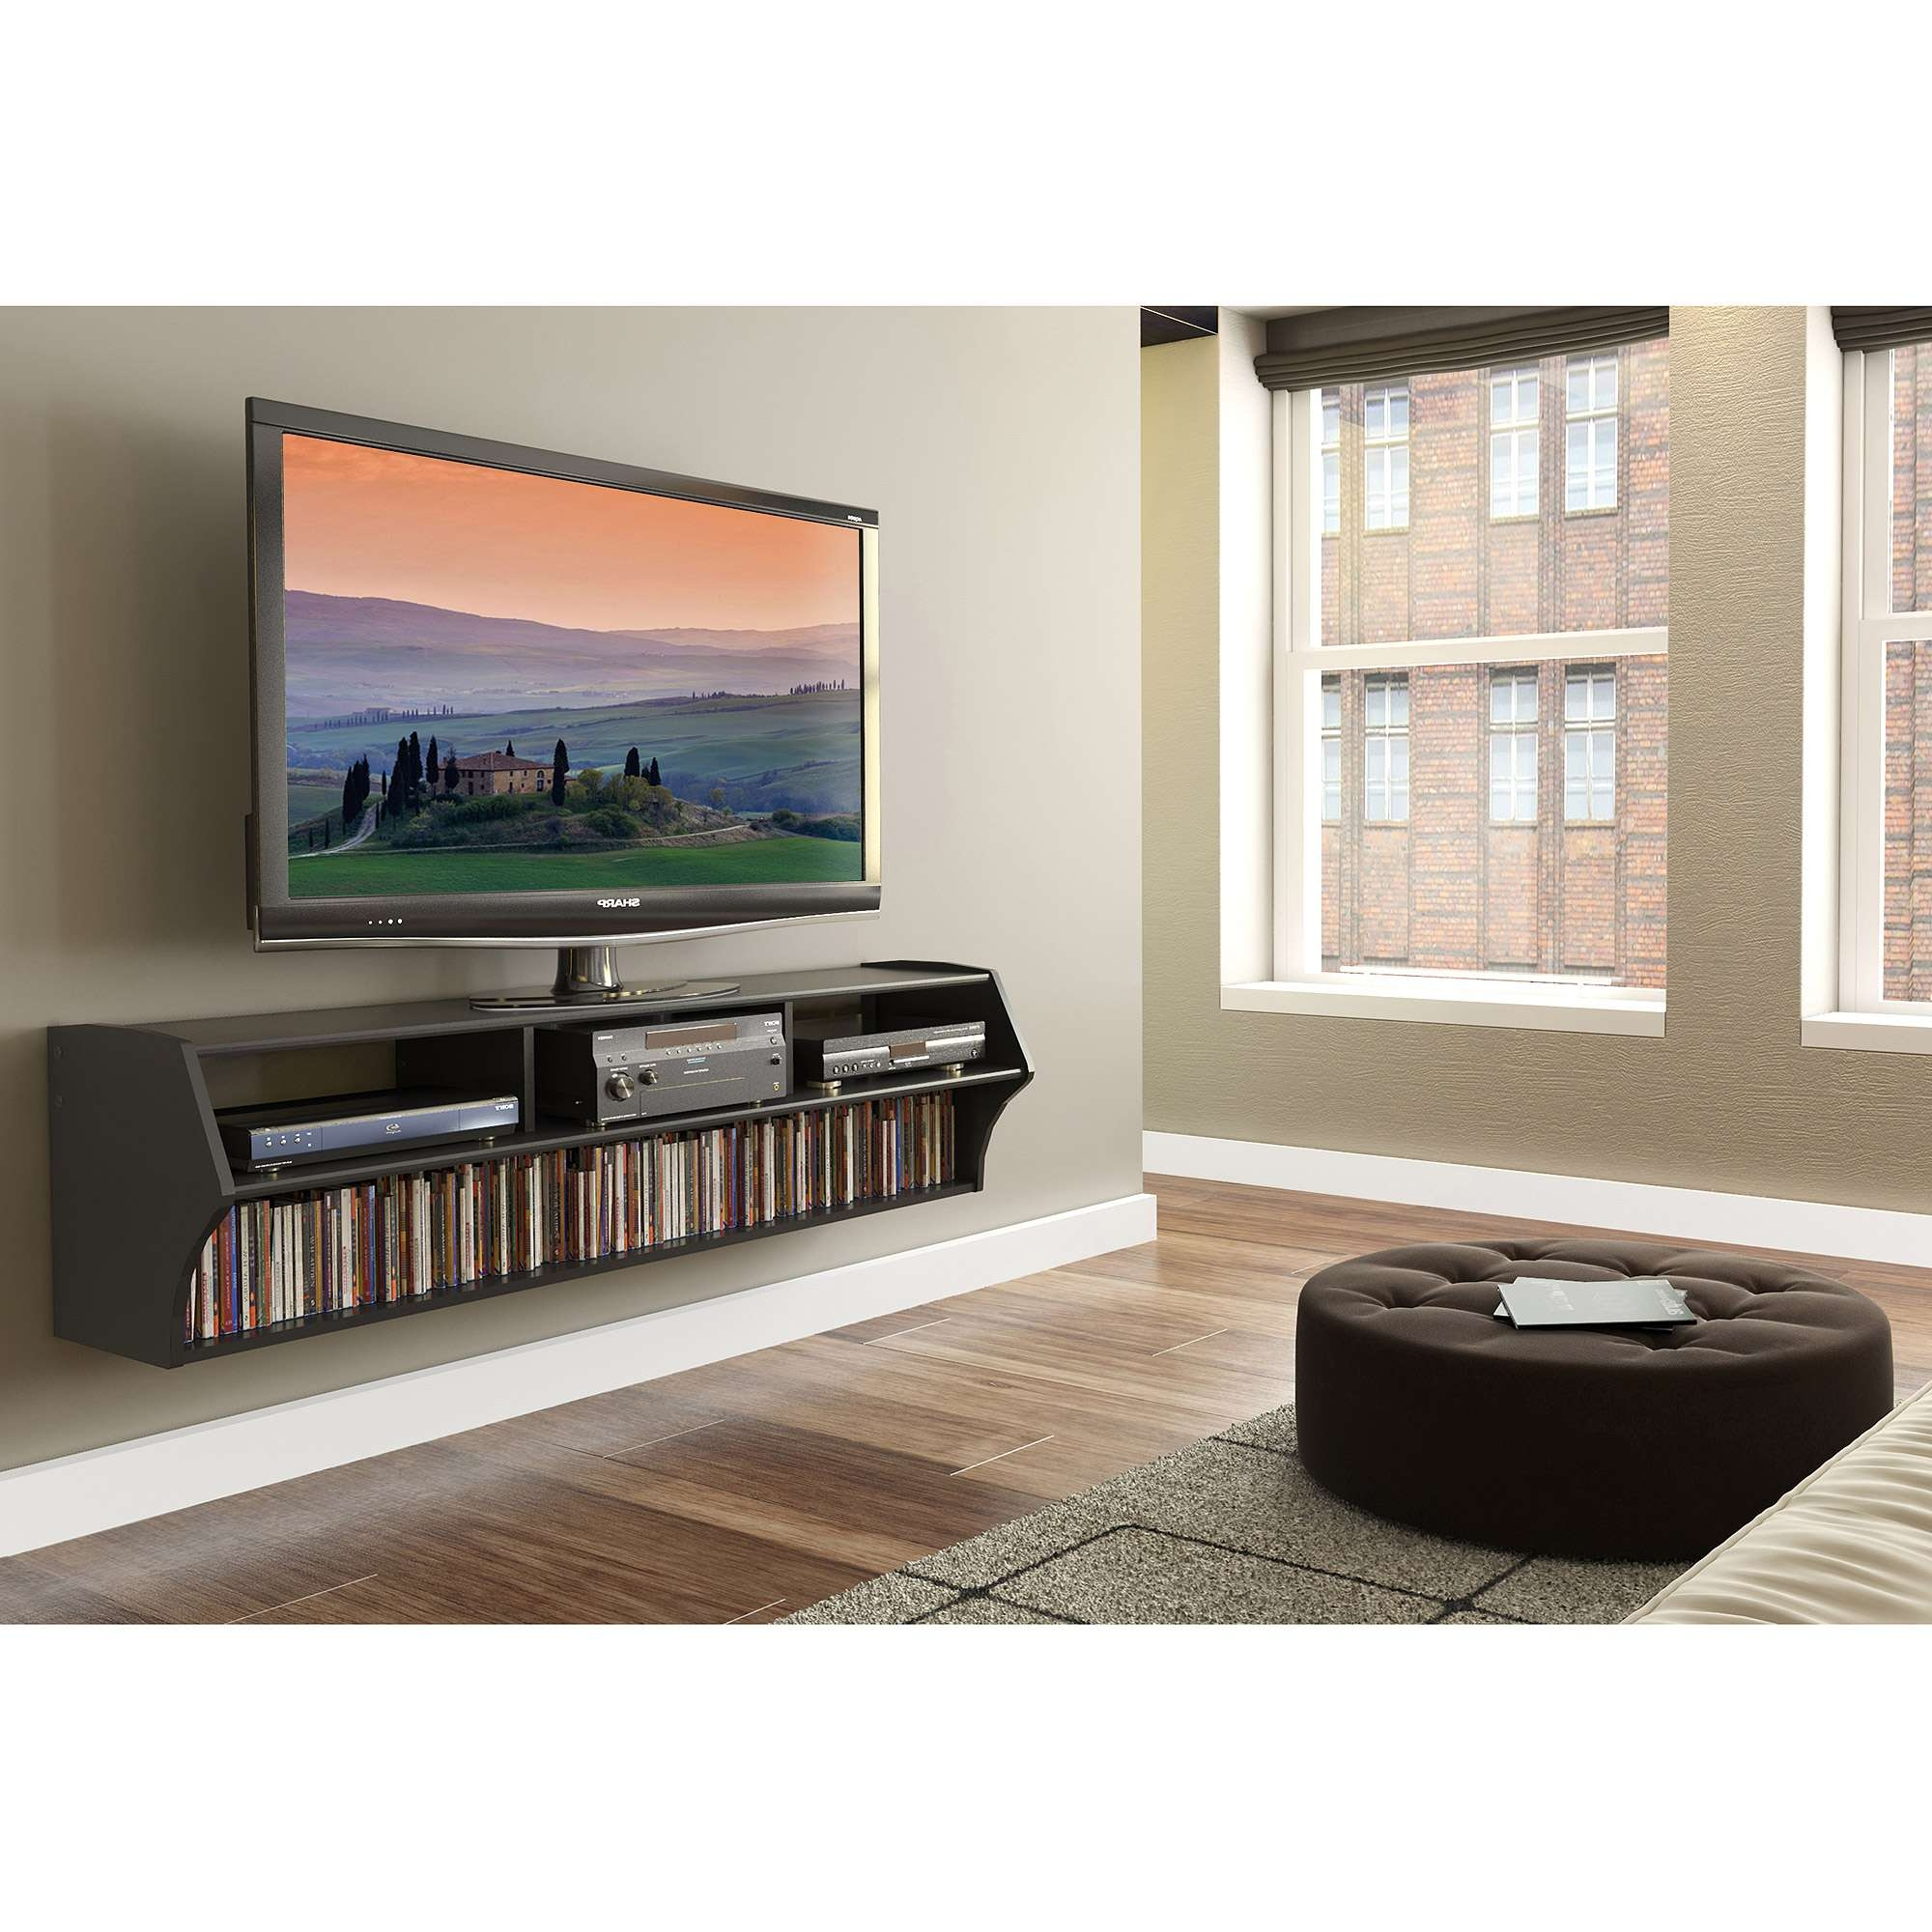 Coffee Table : Fabulous Tv Stand With Matching End Tables Fire Within Coffee Tables And Tv Stands (View 5 of 15)